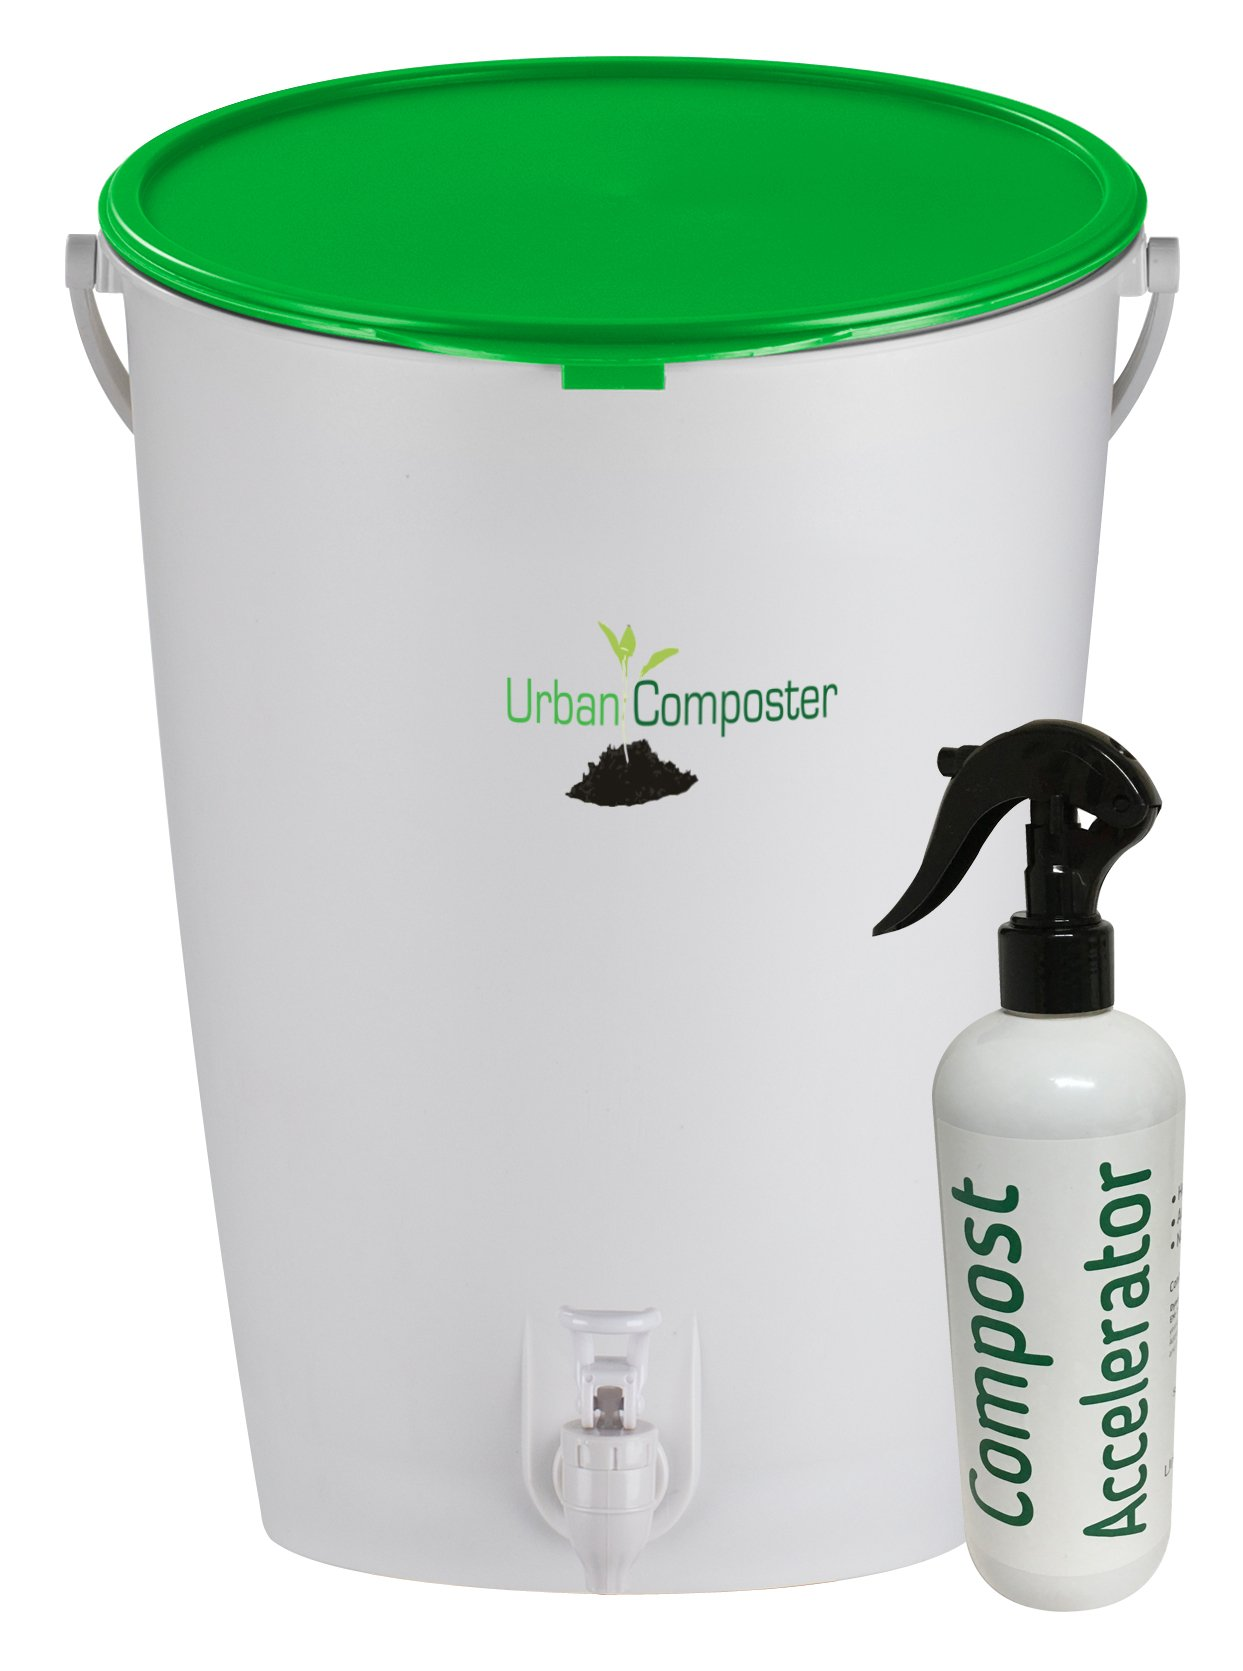 Exaco Trading Company UClarge-G-K G-K Composter and Accelerator Spray Kit, 4 Gallon, Green